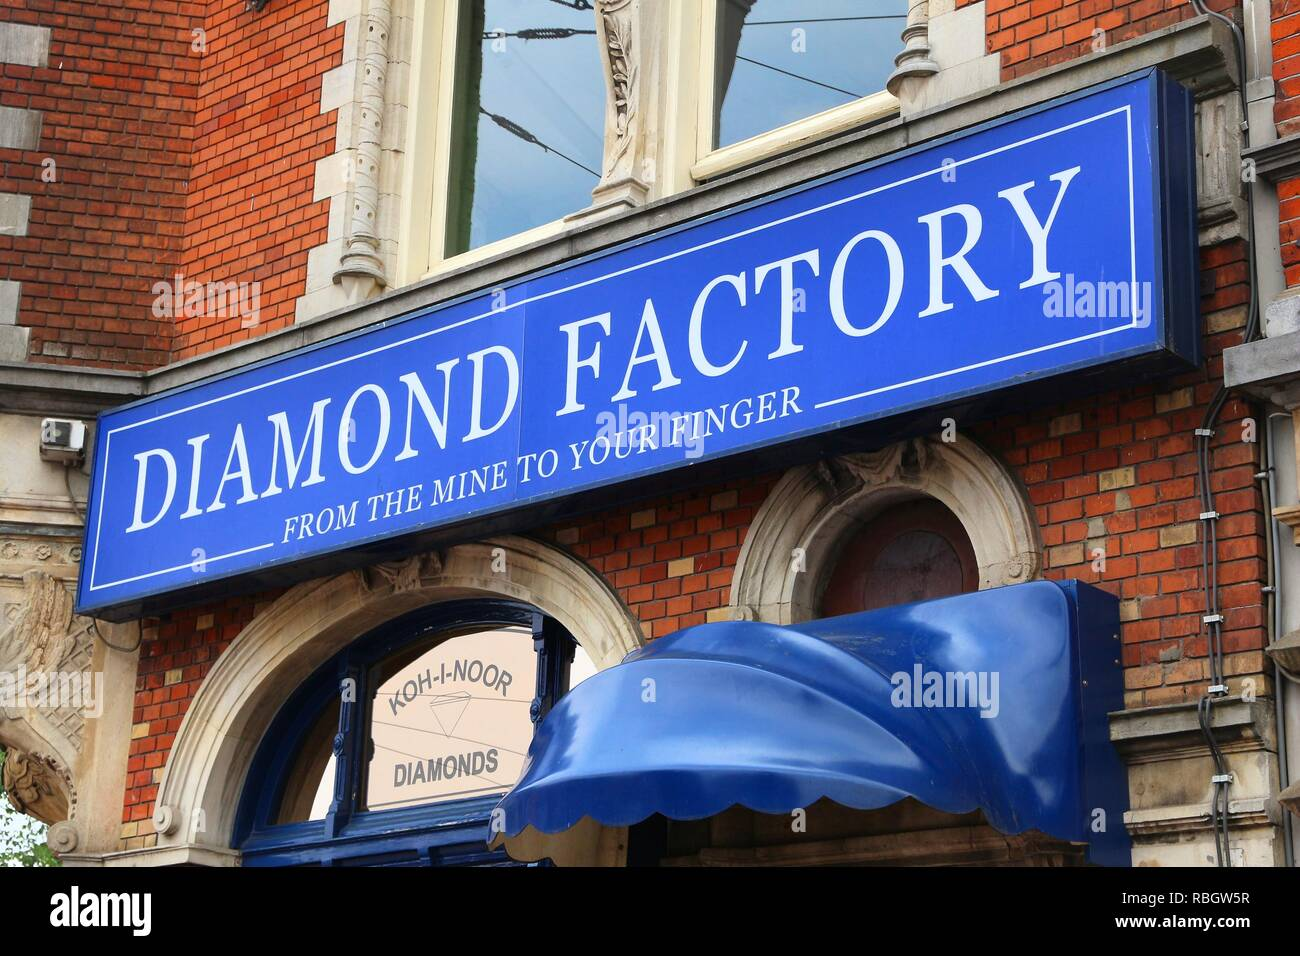 AMSTERDAM, NETHERLANDS - JULY 8, 2017: Diamond factory shop Koh-i-noor in Amsterdam, Netherlands. Amsterdam has a long history of diamond trade and in - Stock Image